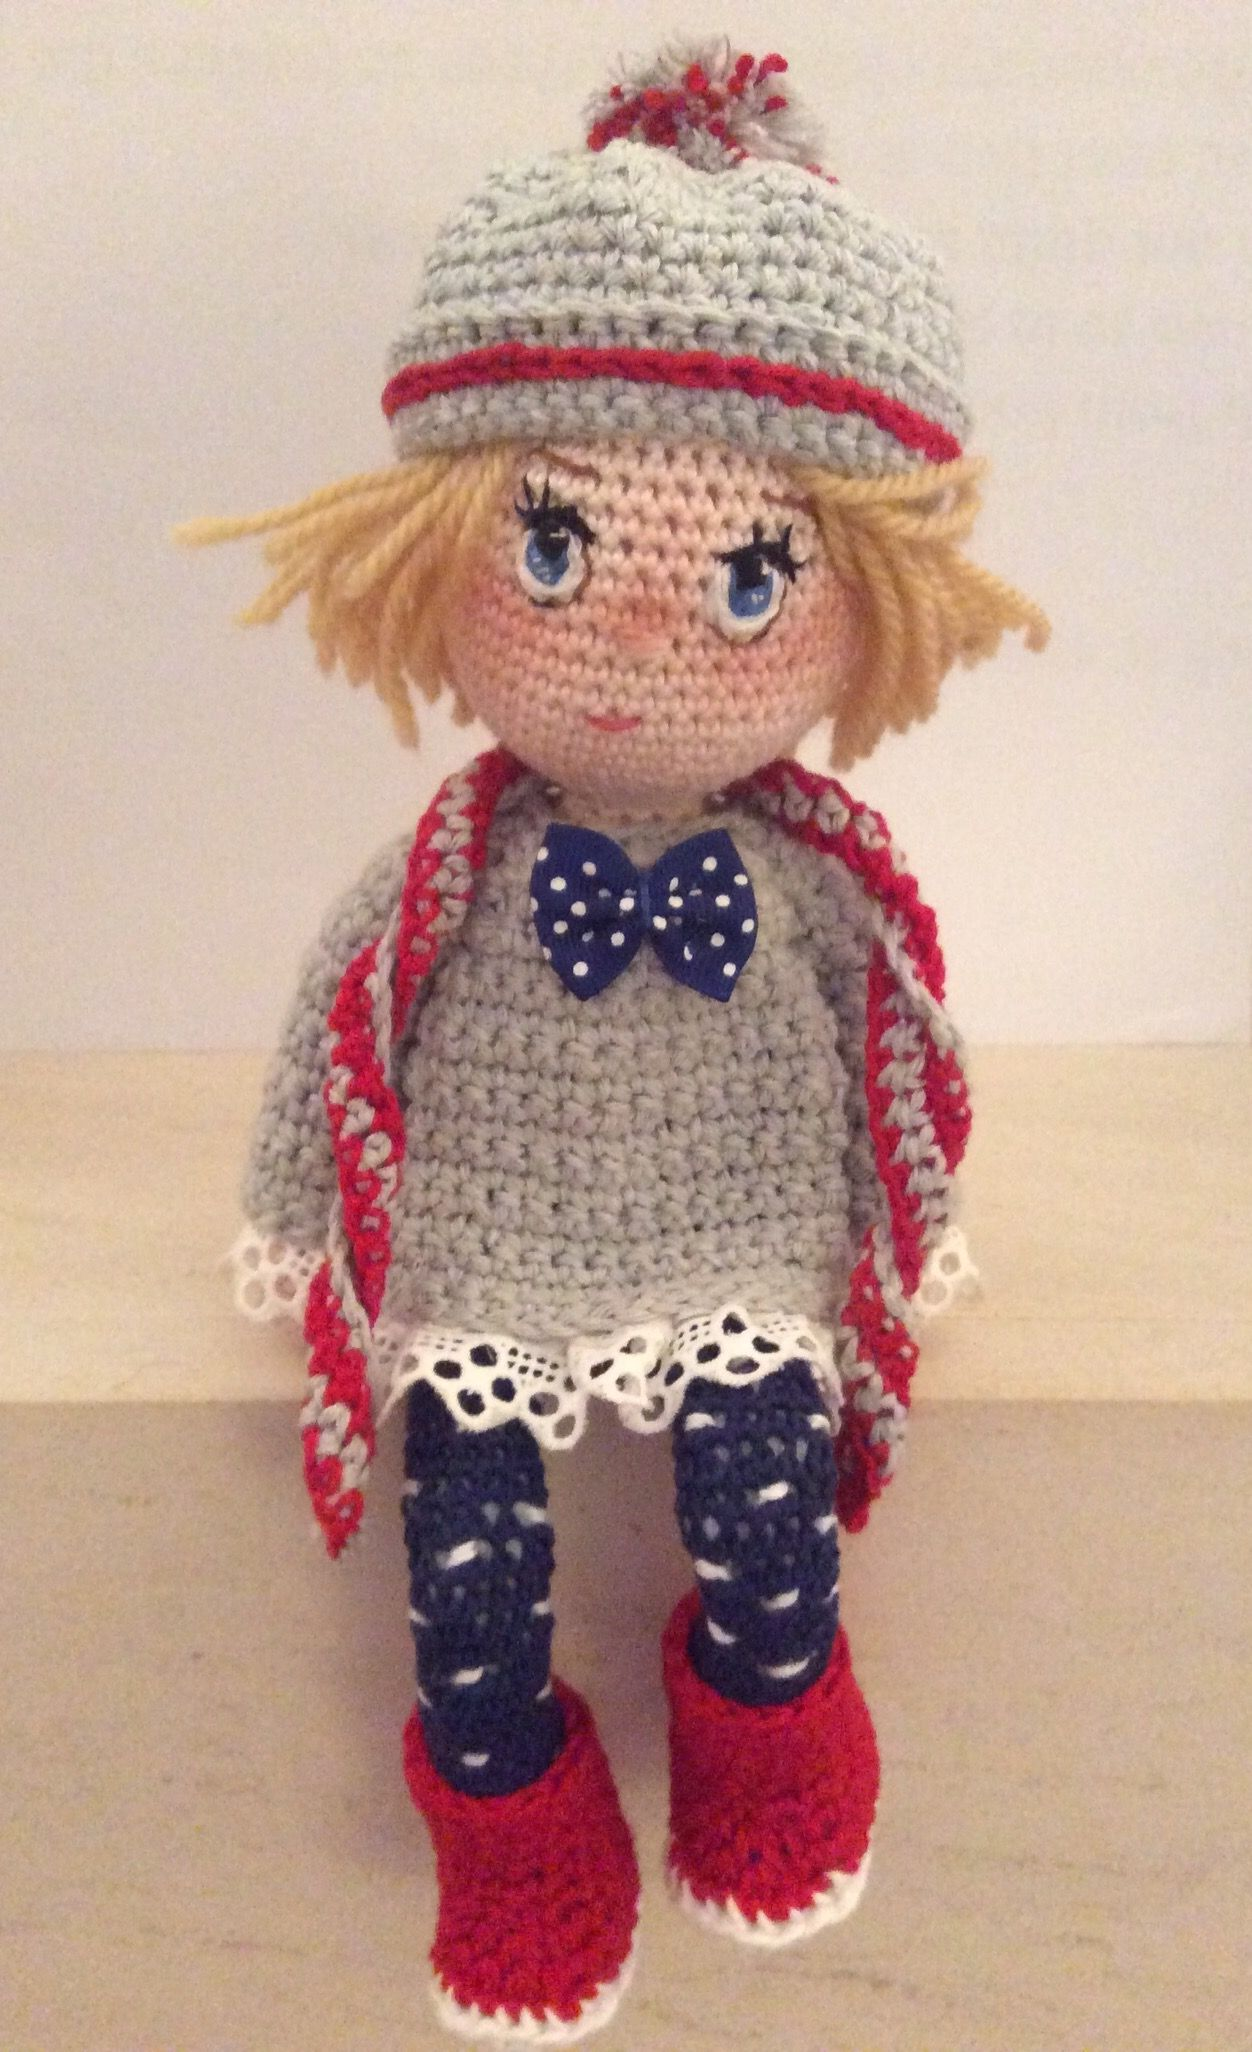 Pin de Salwa Aazam en Crochet dolls Patterns | Pinterest | Muñecas ...